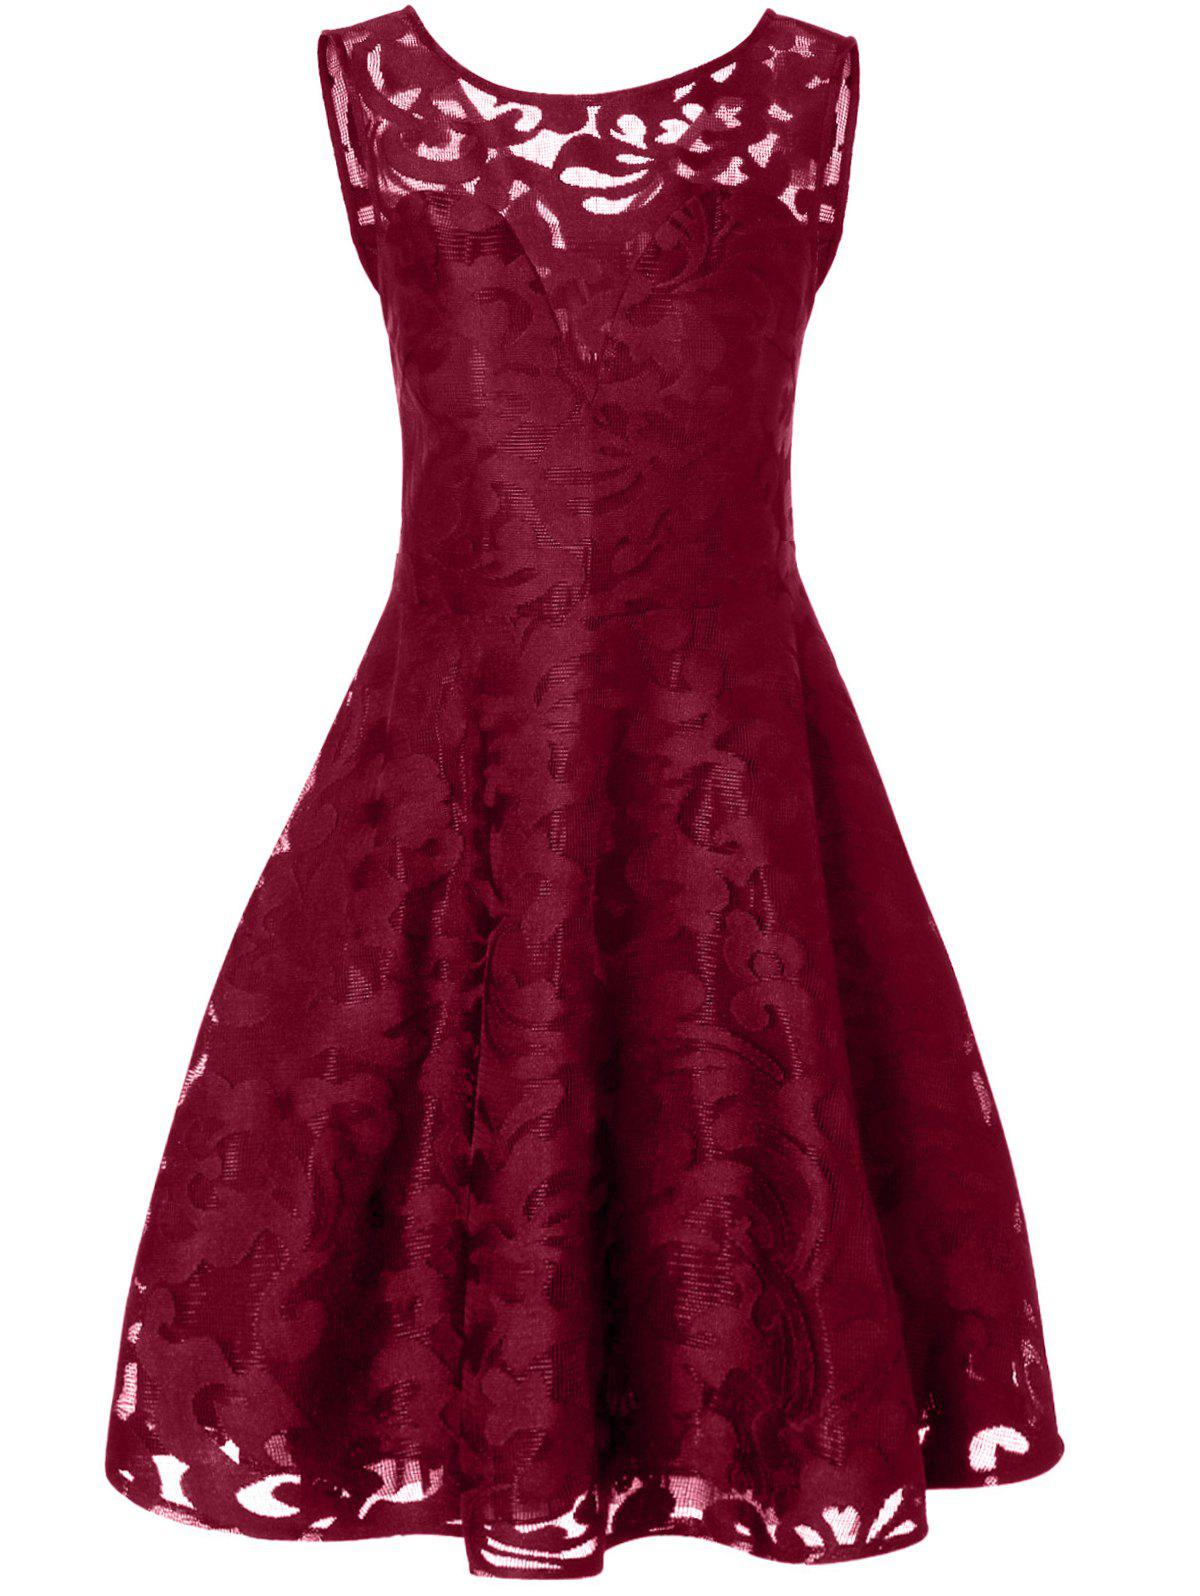 2018 Lace Plus Size Holiday Short Cocktail Dress BURGUNDY XL In ...